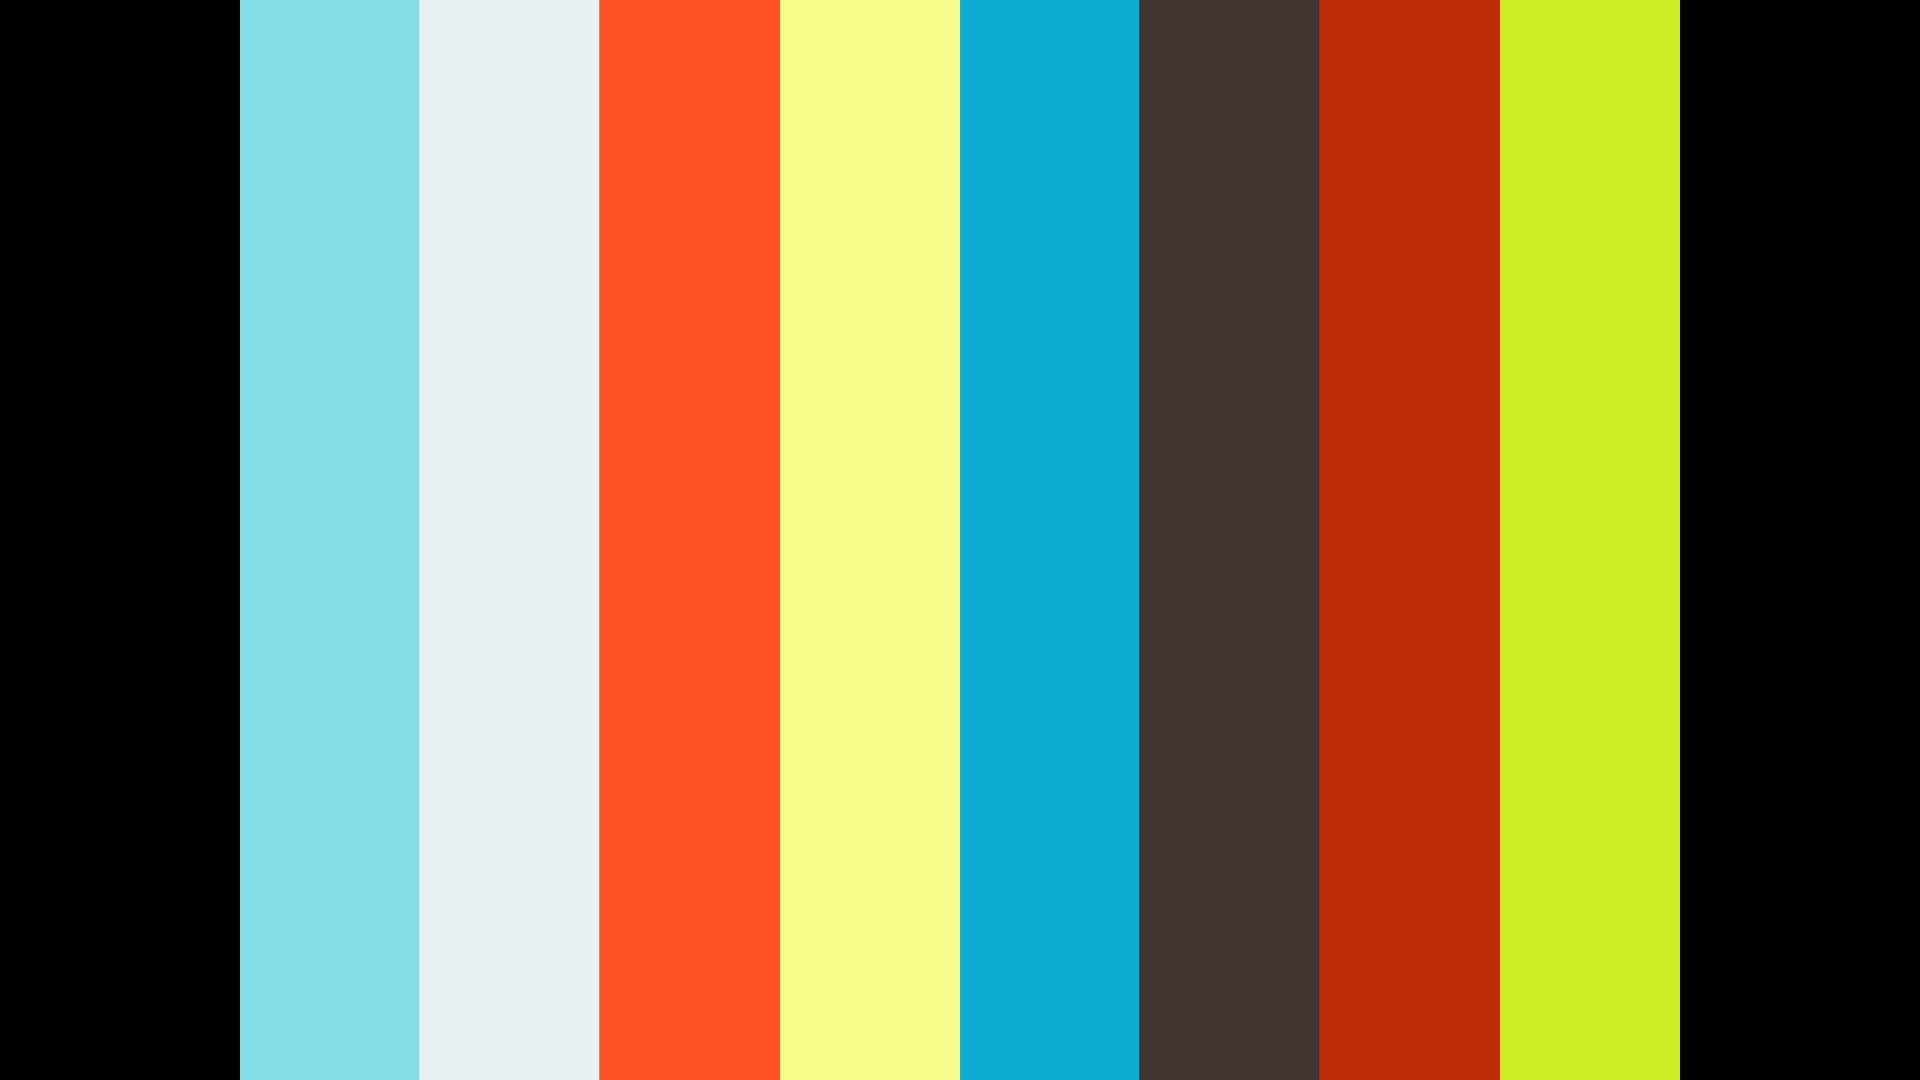 Musik Lemon Artists App Builder Promo Video 2017